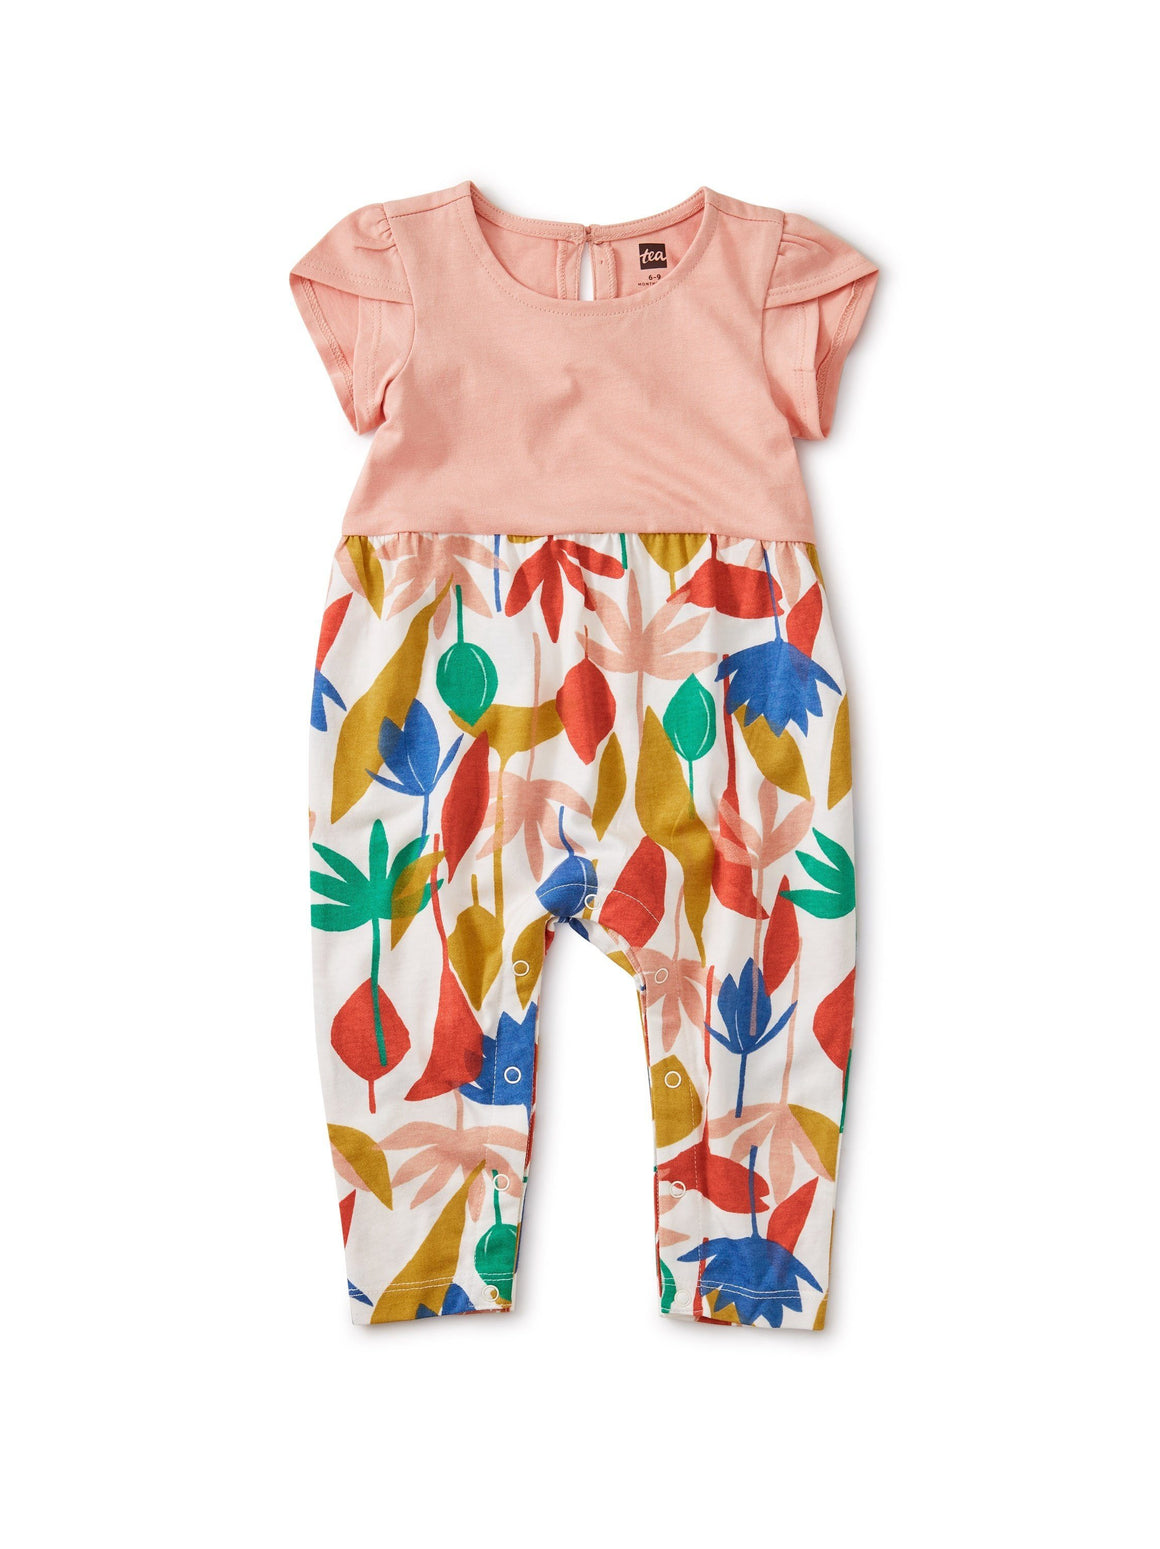 20S32510-Y40 Tea Collection Egyptian Floral Tulip Sleeve Baby Girls Romper Jumpsuits / Rompers Tea Collection